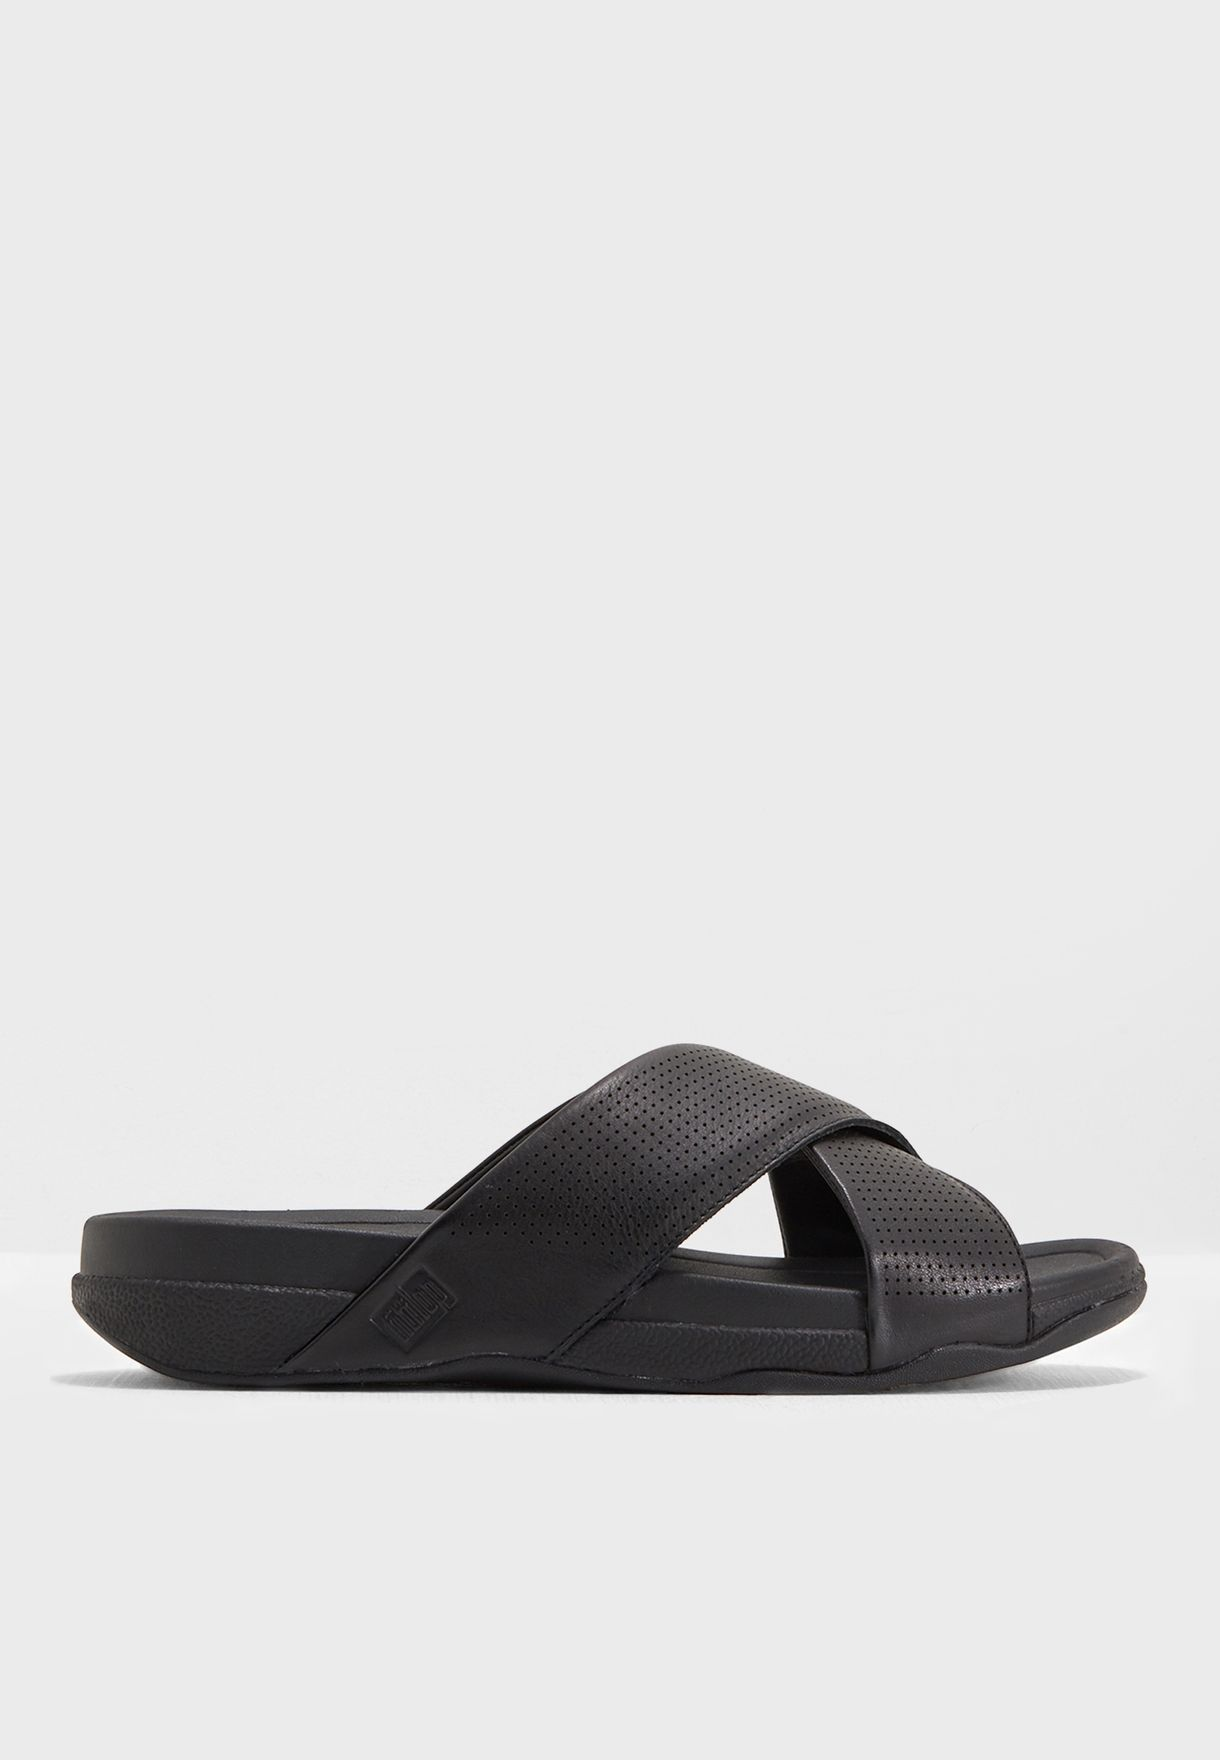 1b116fbfe852 Shop Fitflop black Perforated Leather Slide L58-001 for Men in UAE ...